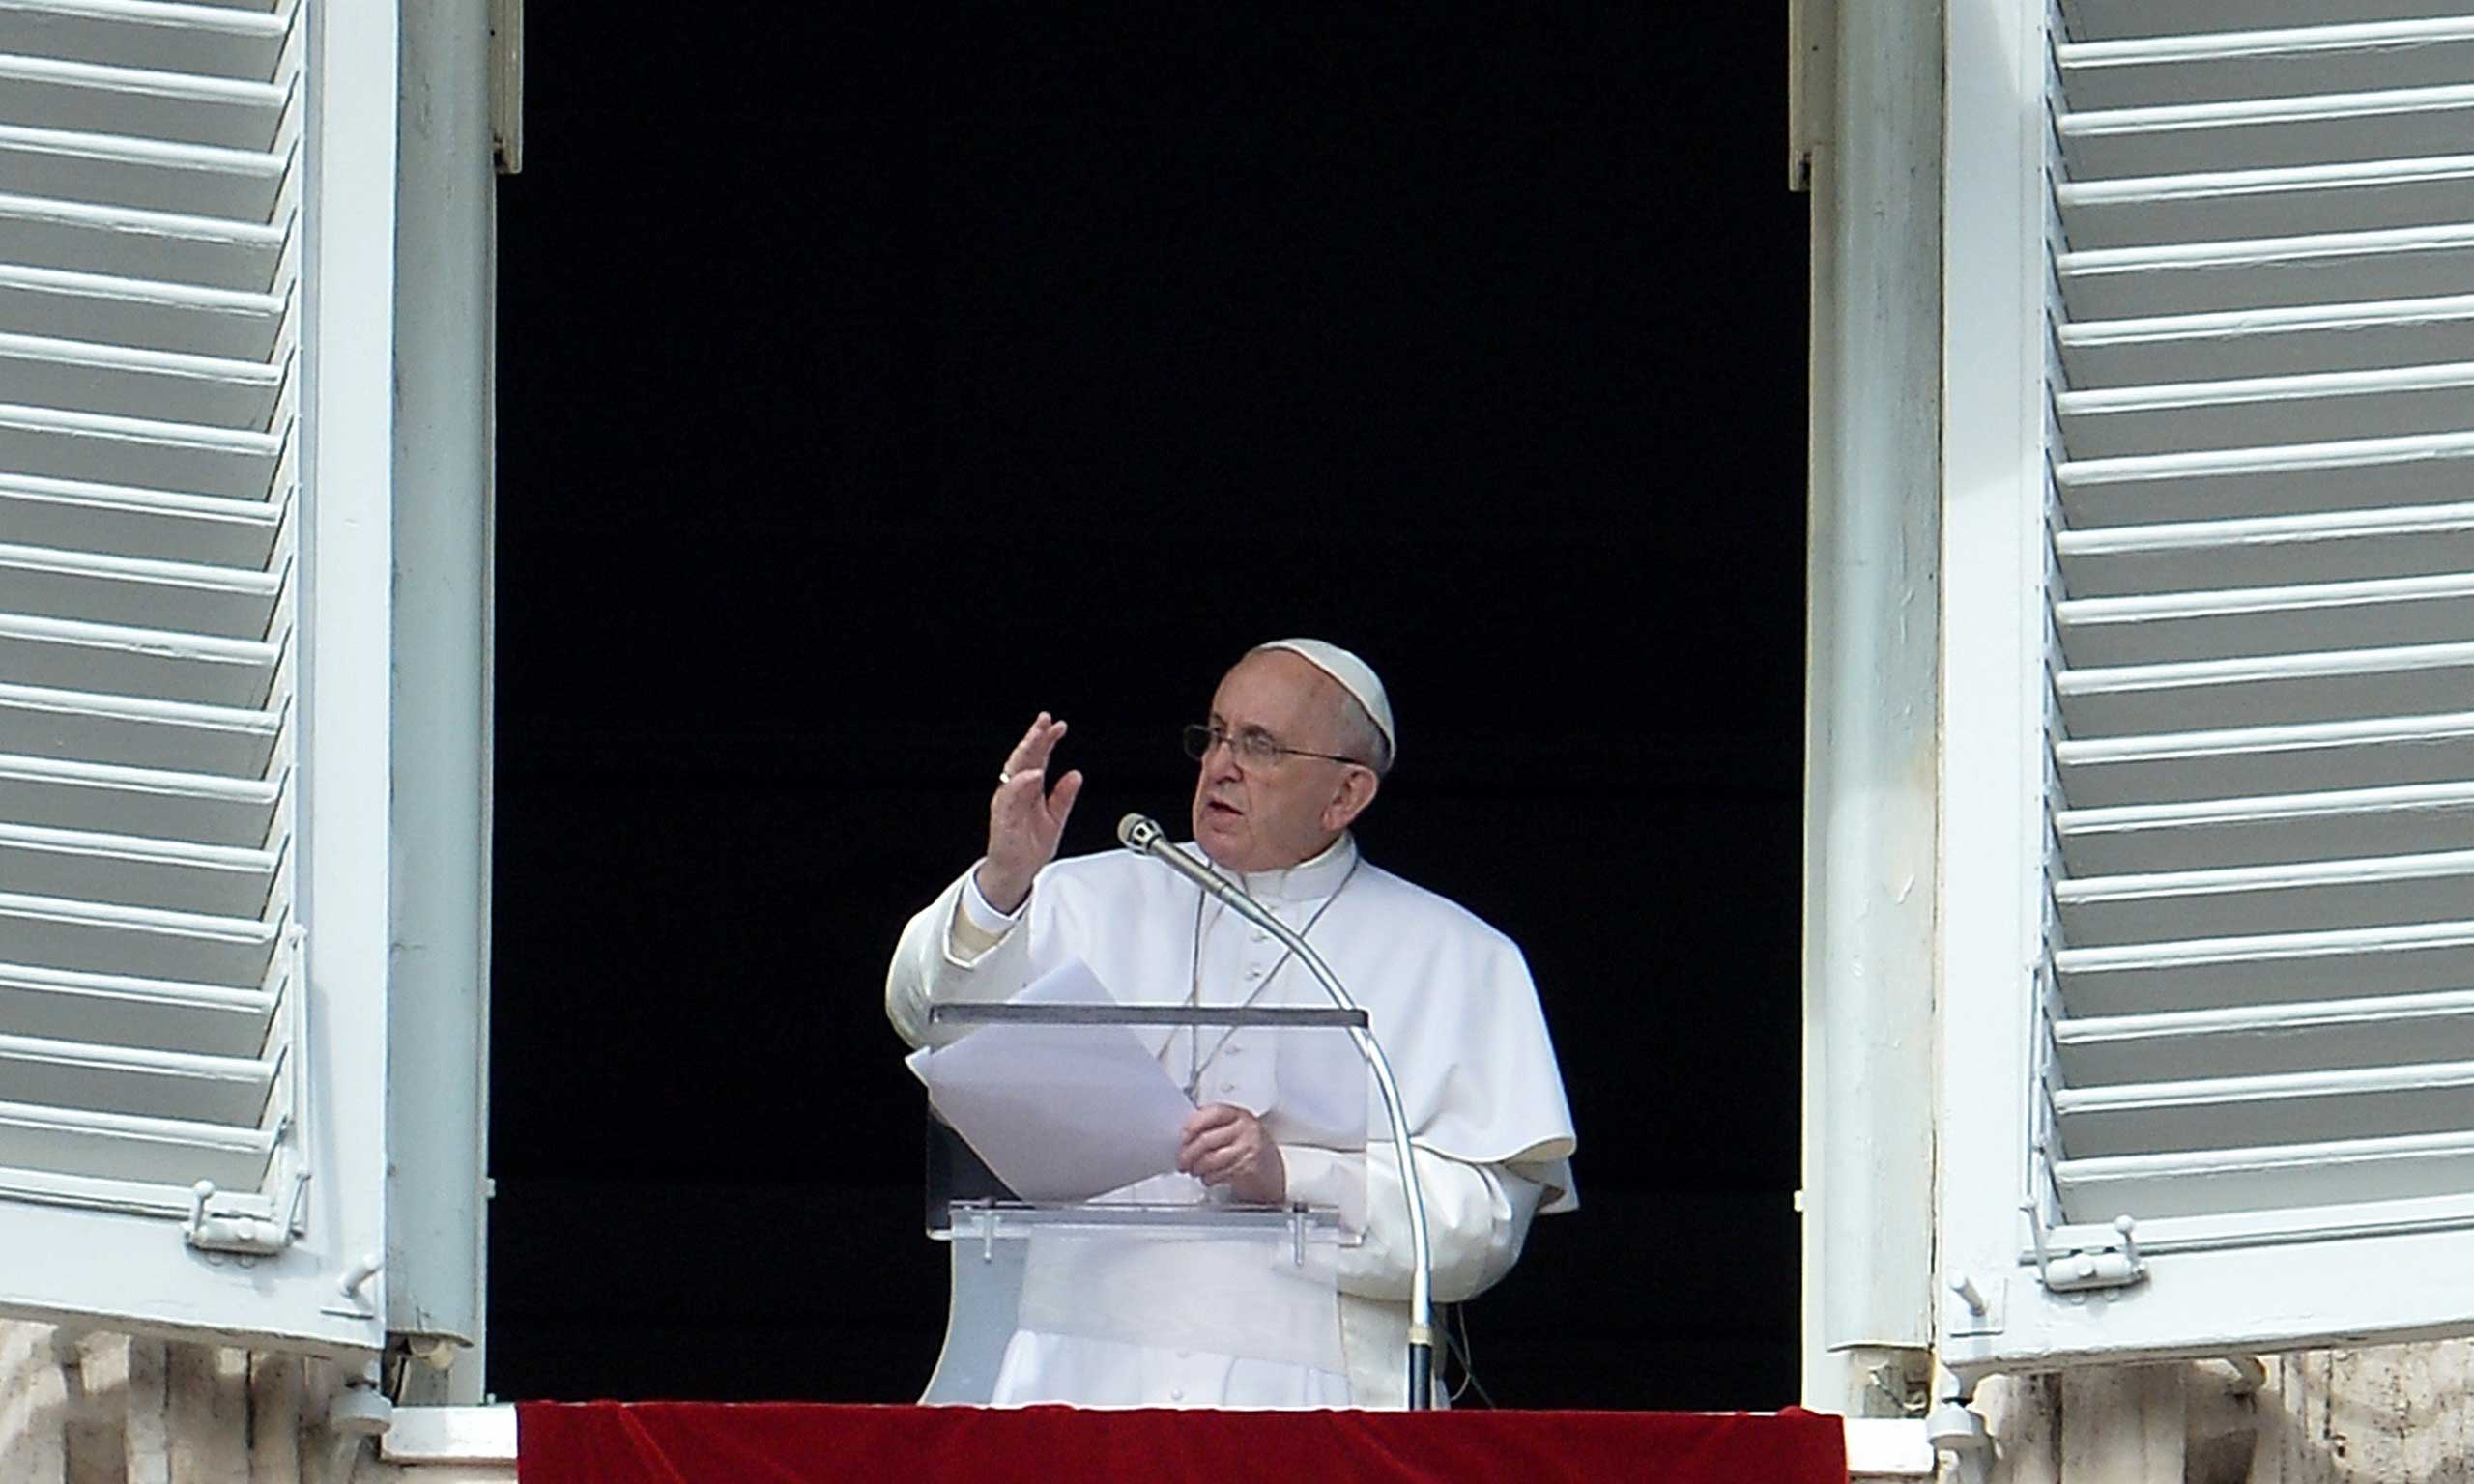 Pope Francis addresses the crowd from the window of the apostolic palace overlooking Saint Peter's square during his Angelus prayer on Feb. 22, 2015 at the Vatican.